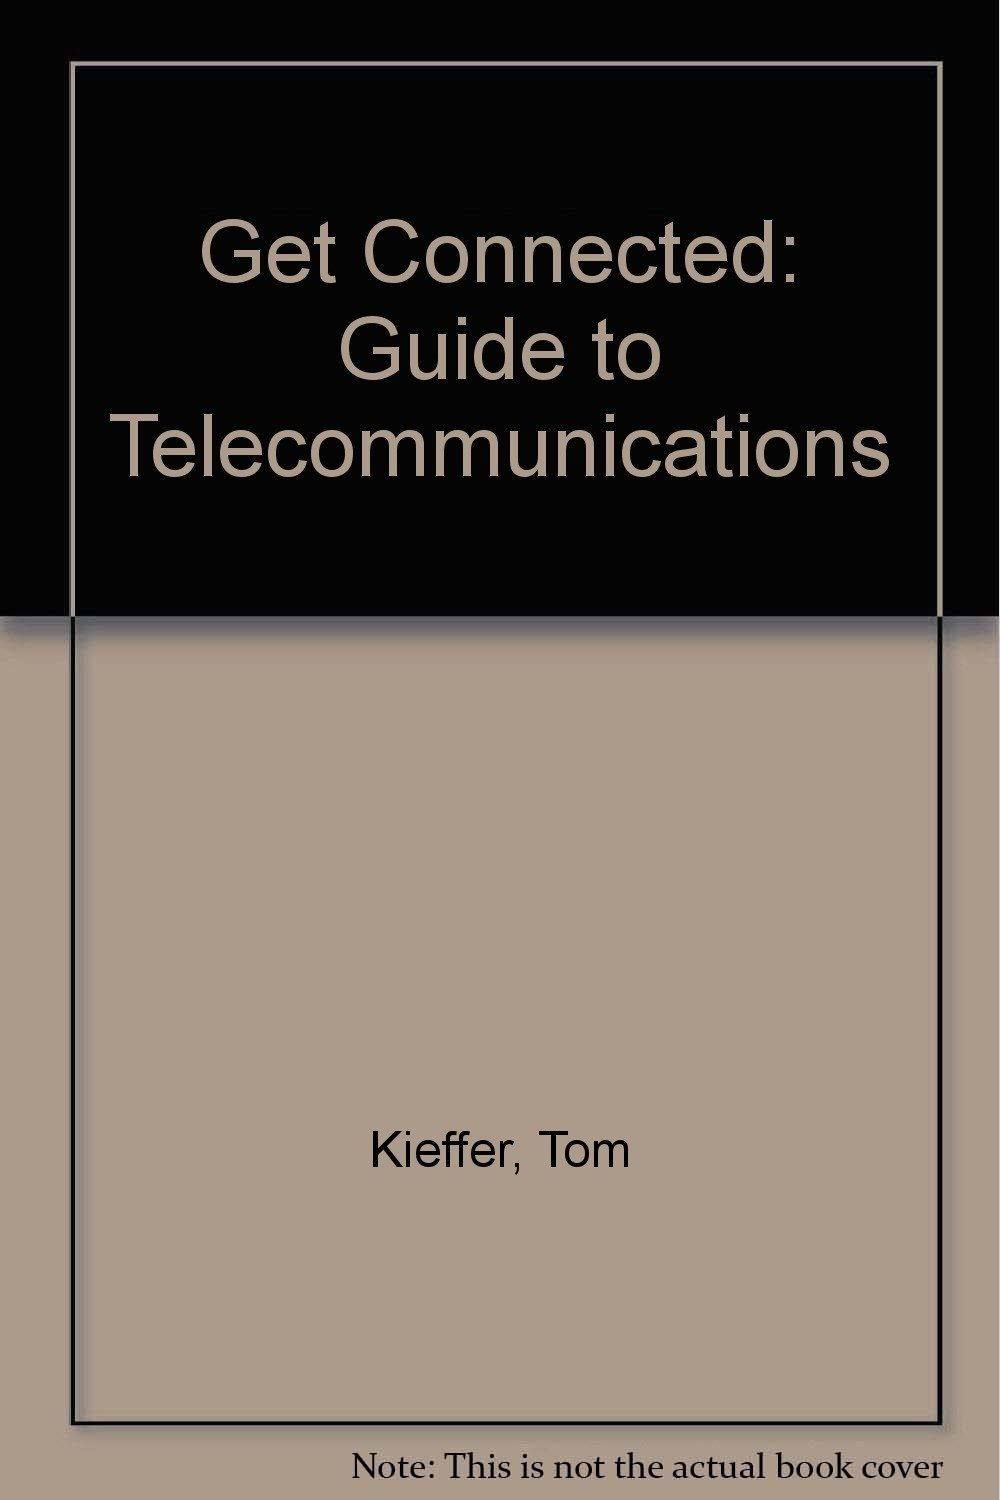 Get Connected: A Guide to Telecommunications: Terry Hansen, Tom Kieffer:  9780912677286: Amazon.com: Books